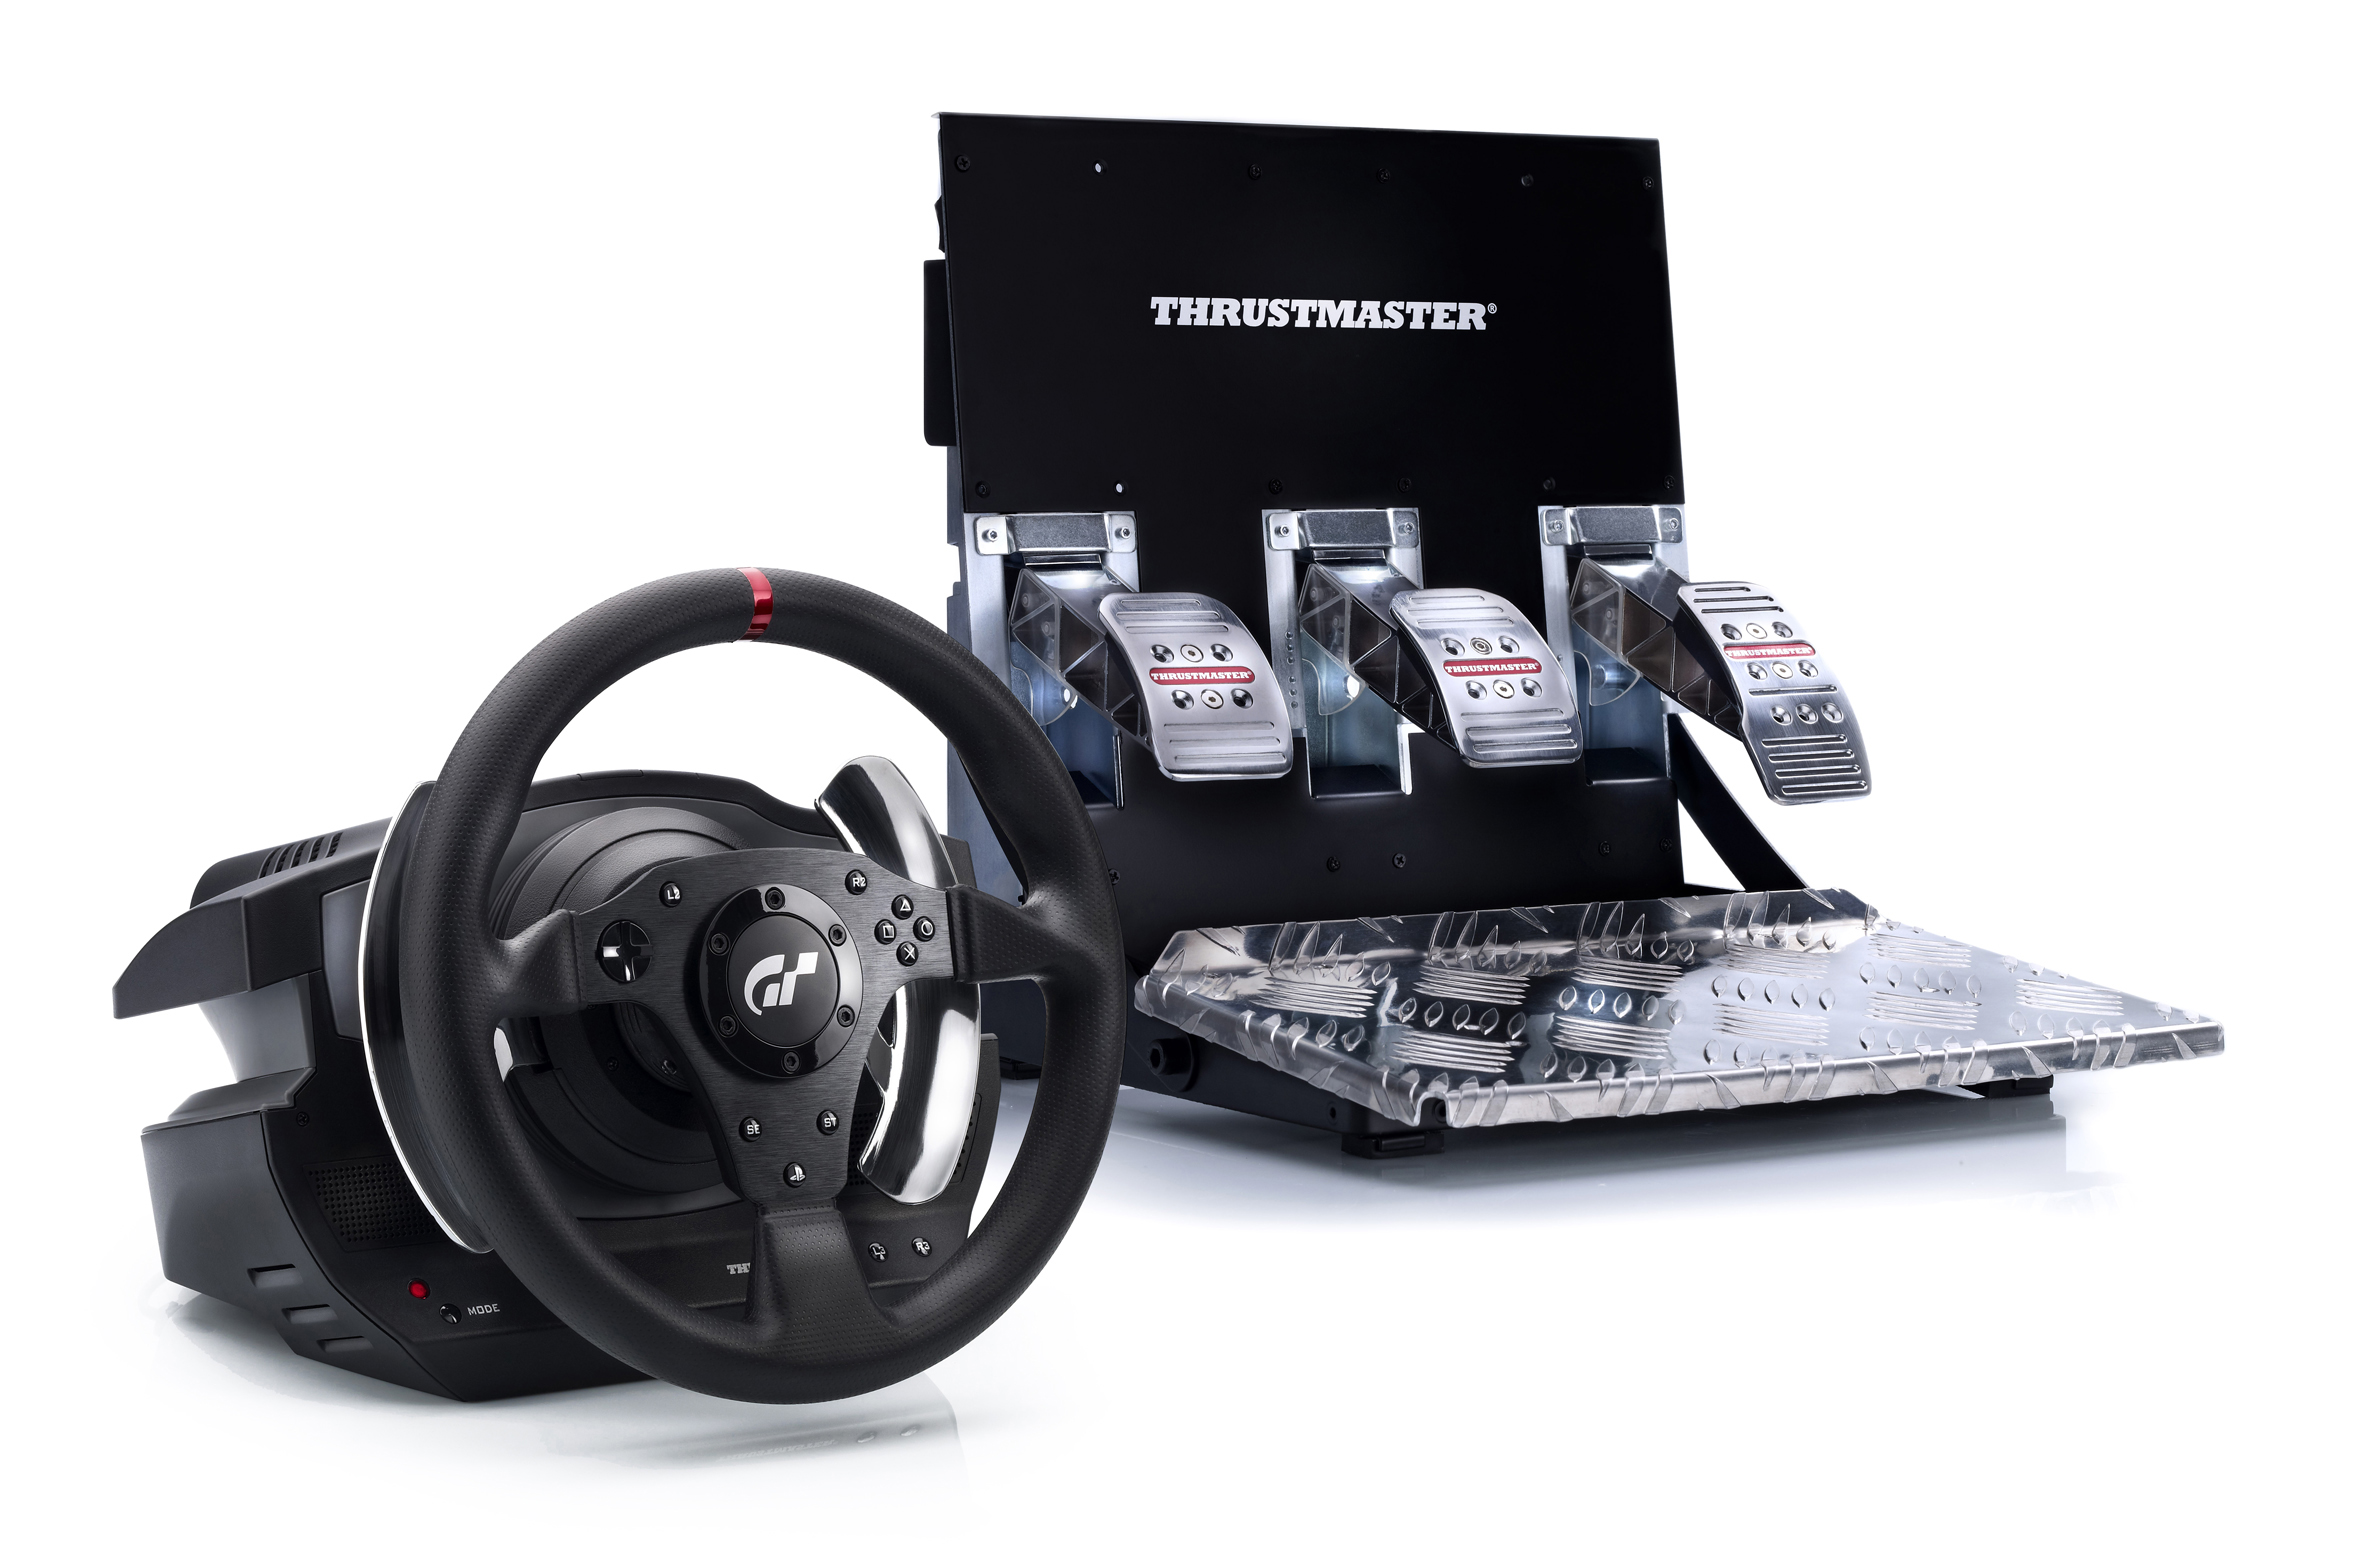 Thrustmaster T500RS Wheel and Pedals